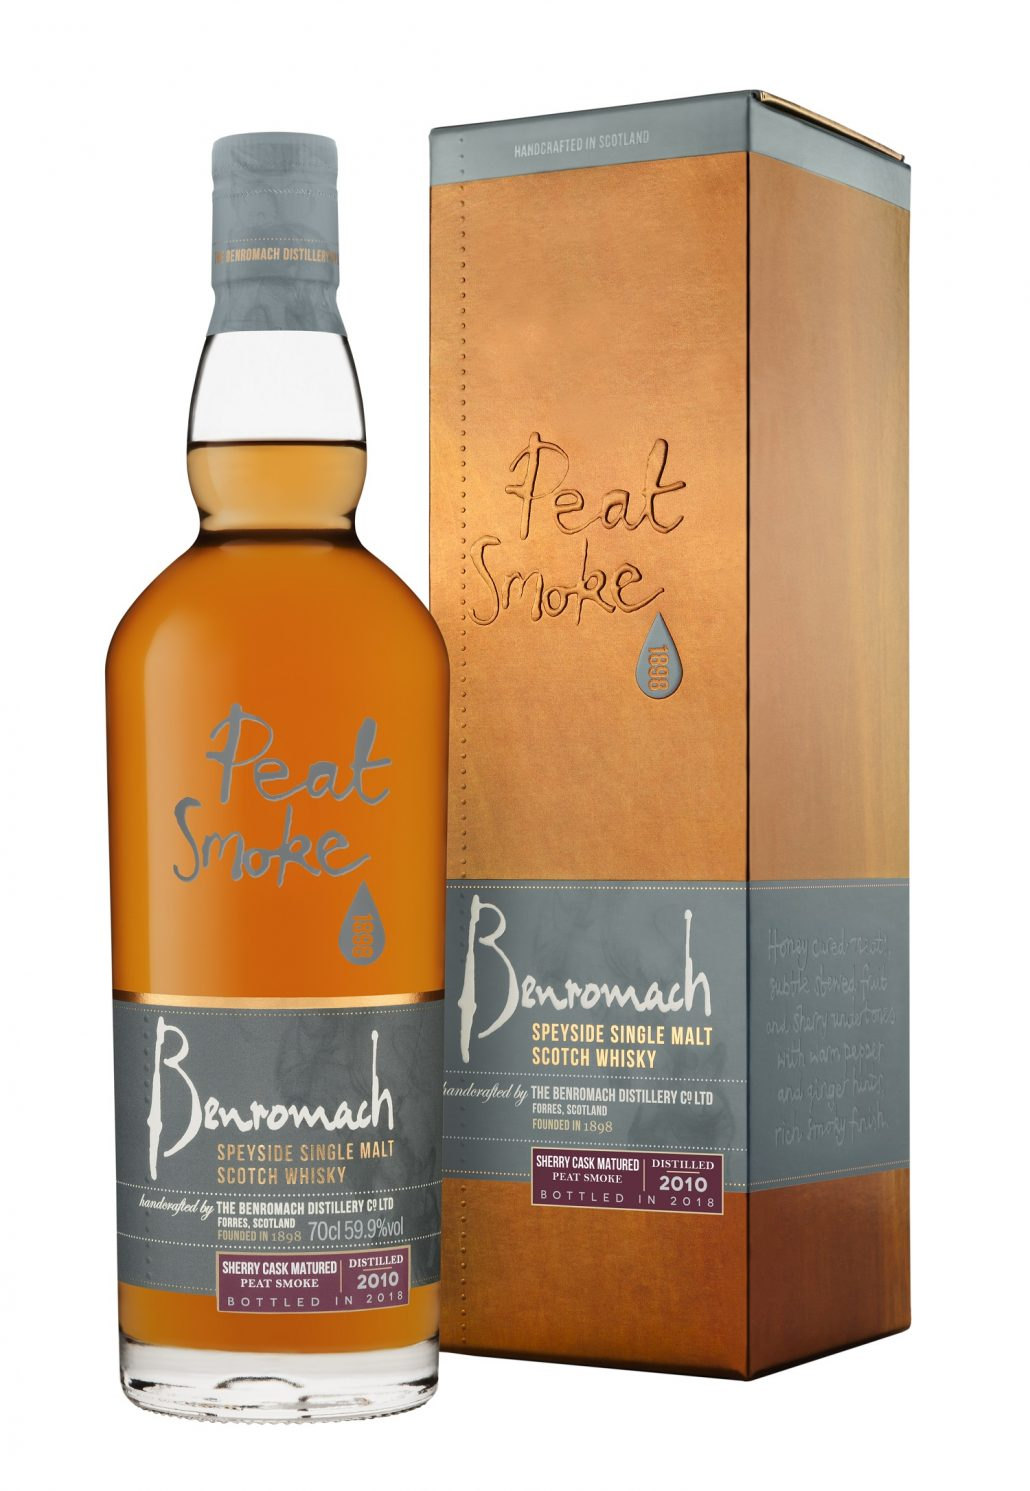 Benromach Limited Edition Whisky